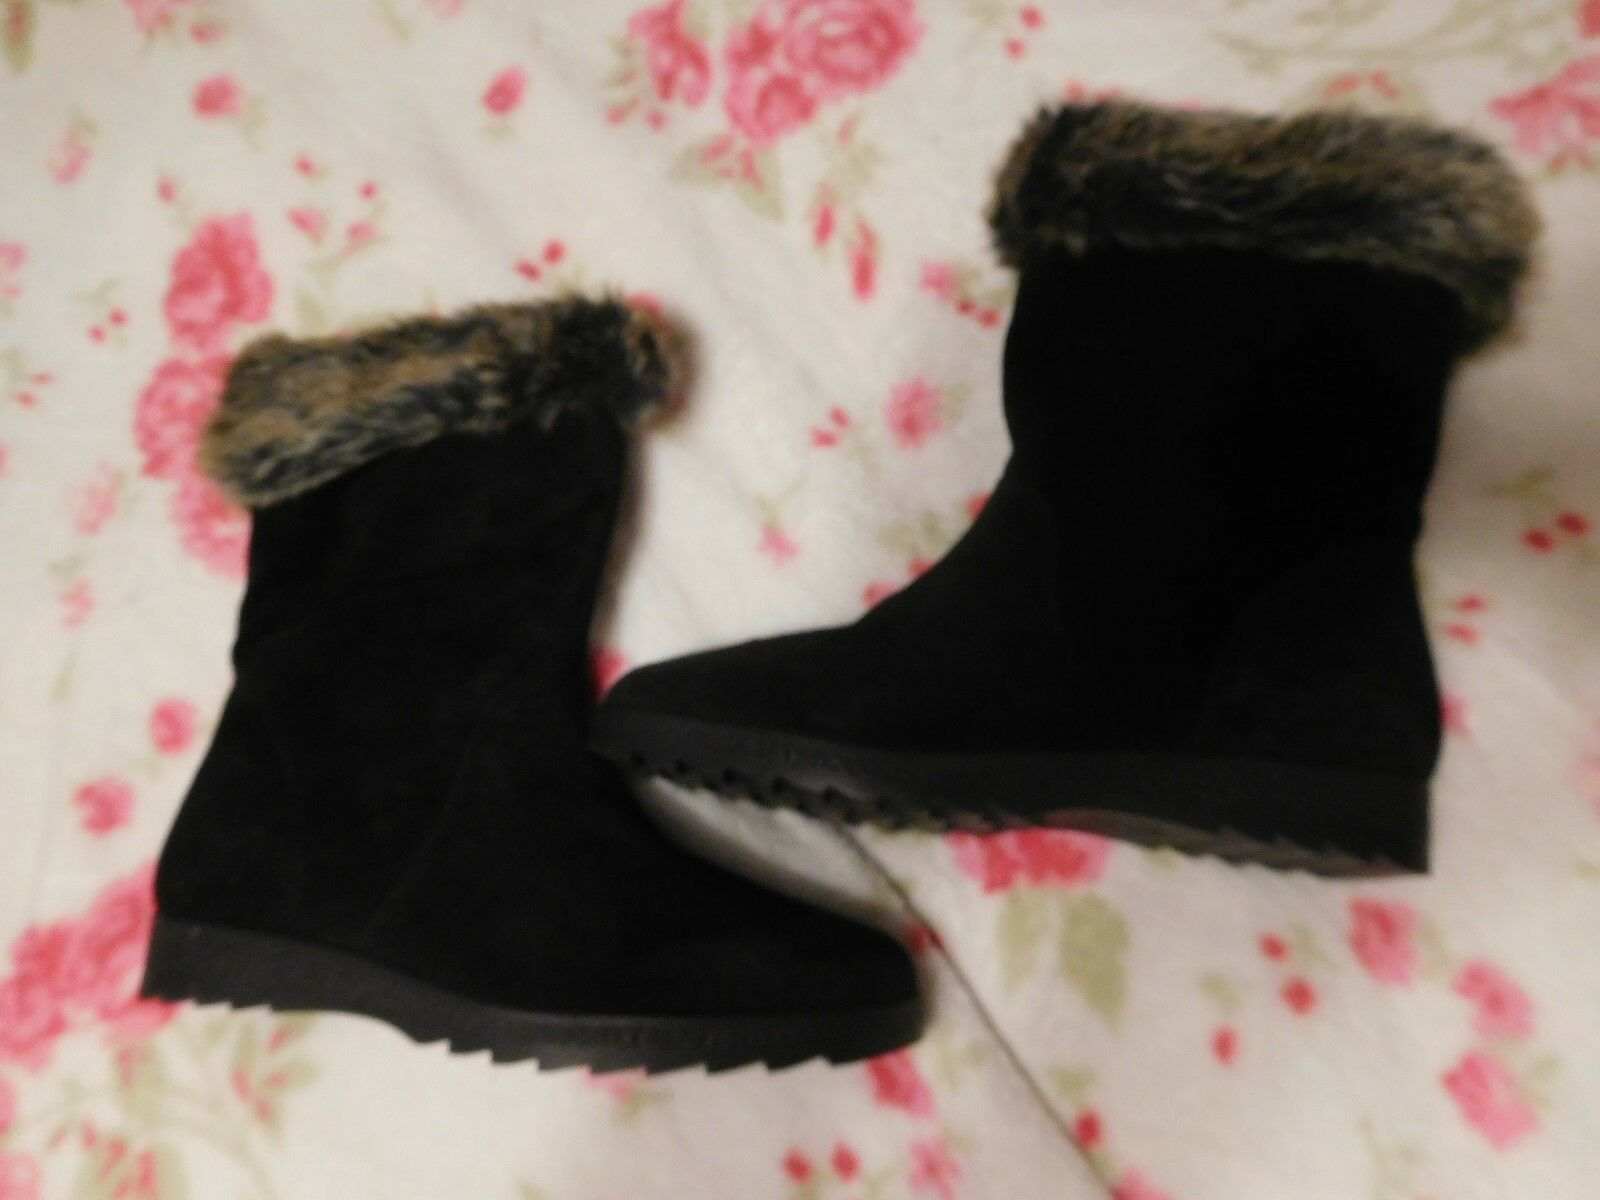 Caprice Walking on Air Black Waterproof Suede Leather Boots Size 5 7.5